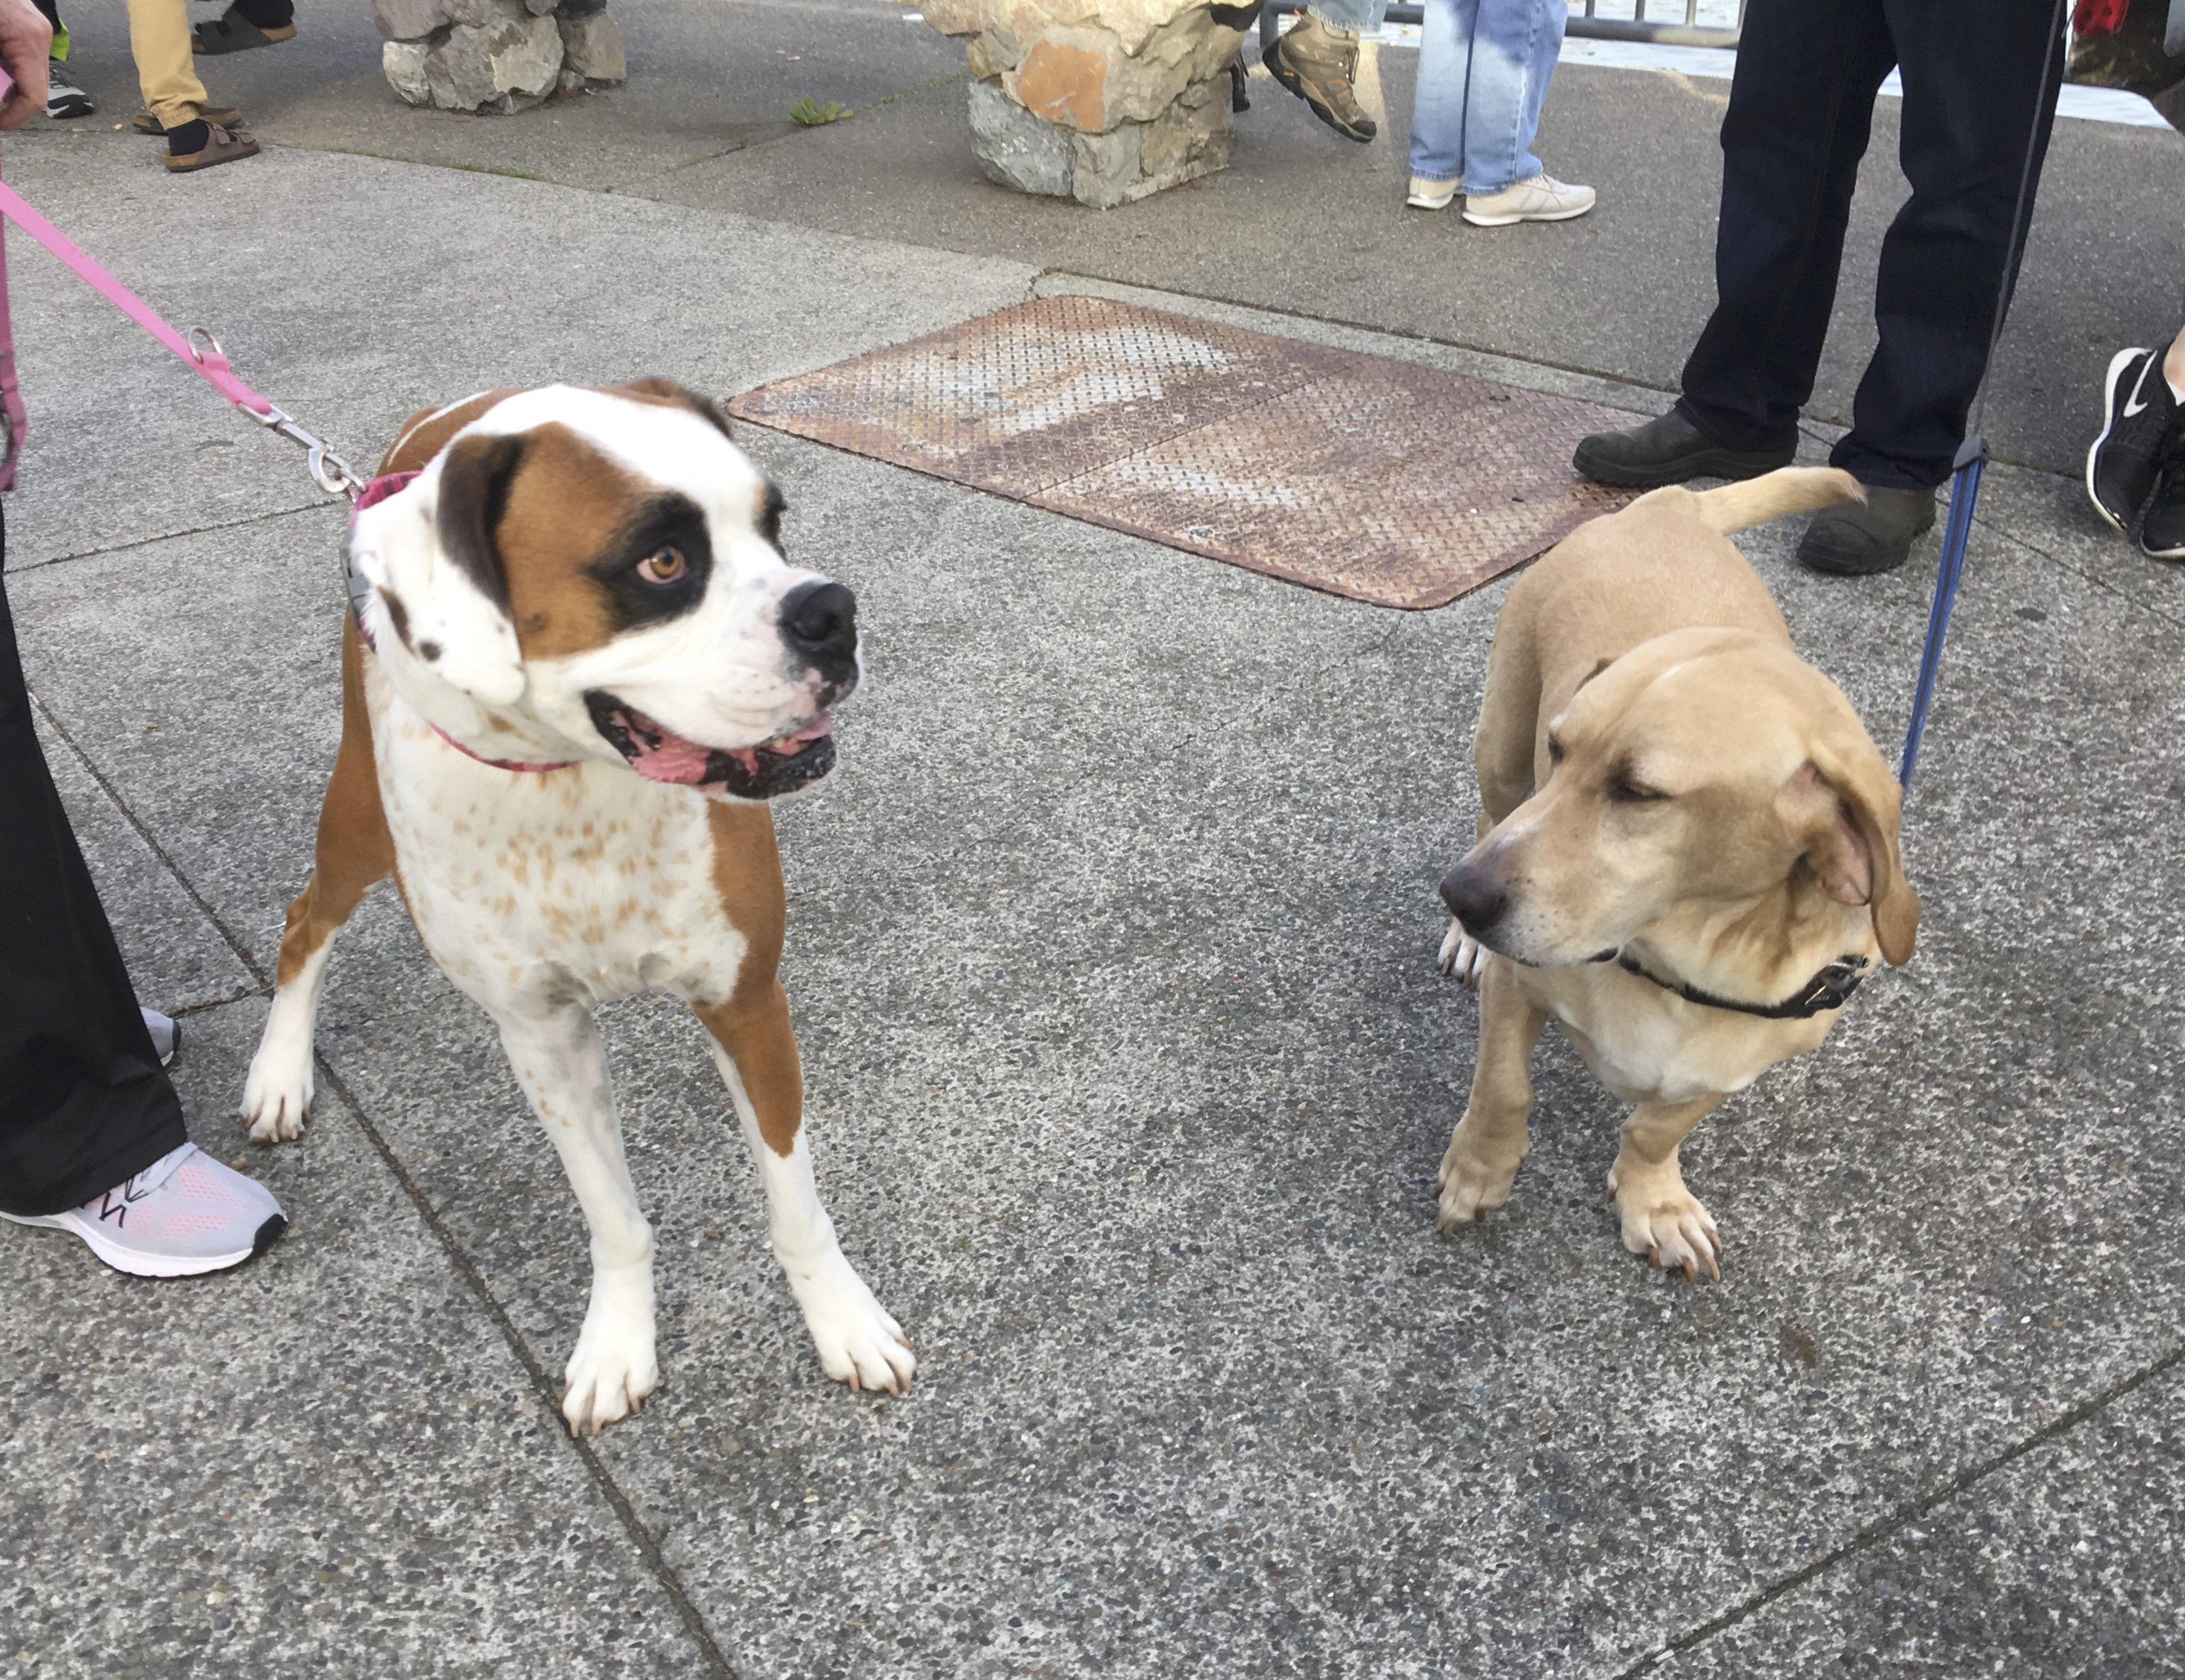 Boxer Looking Completely Insane Next To Basset Hound Labrador Retriever Mix Looking Cool And Collected